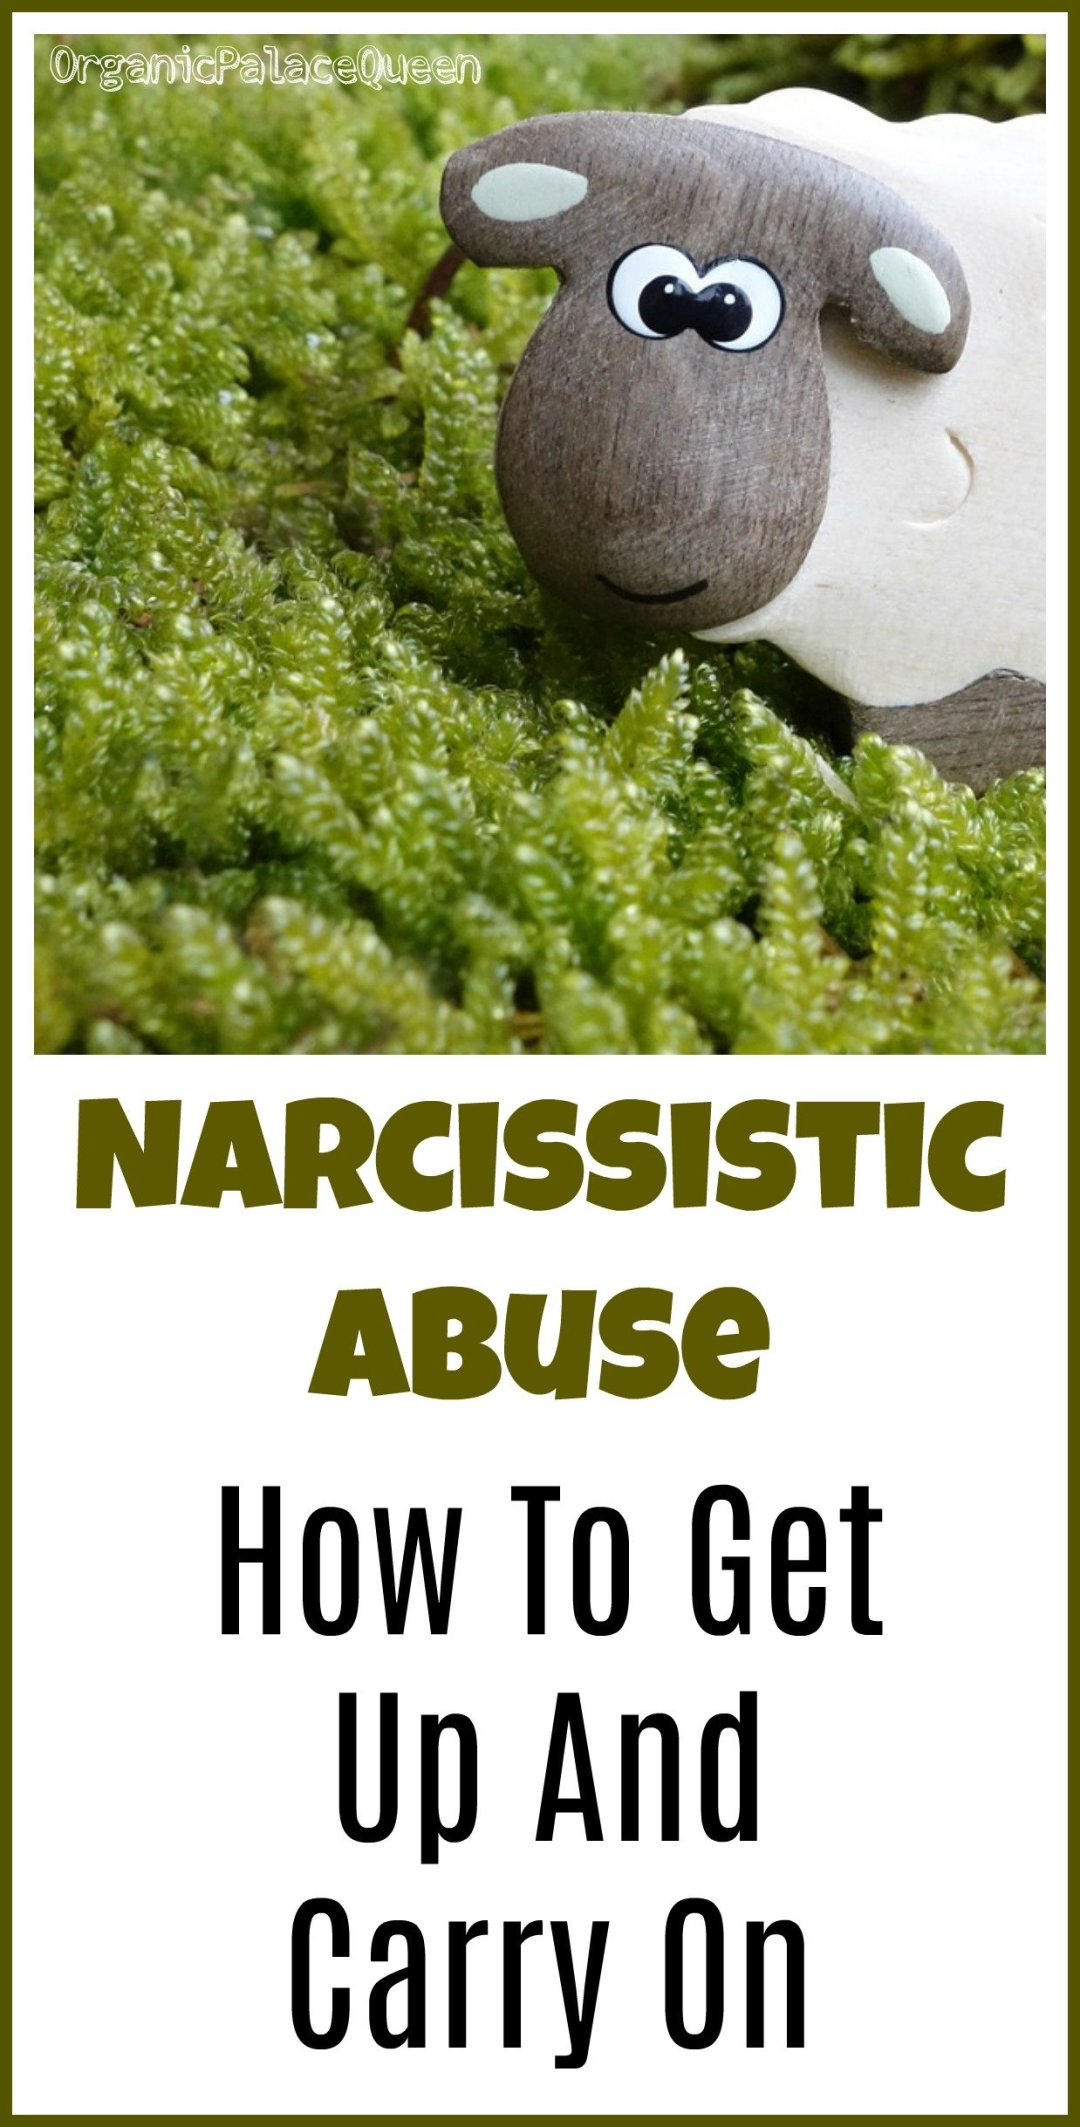 You survived narcissistic abuse - now what